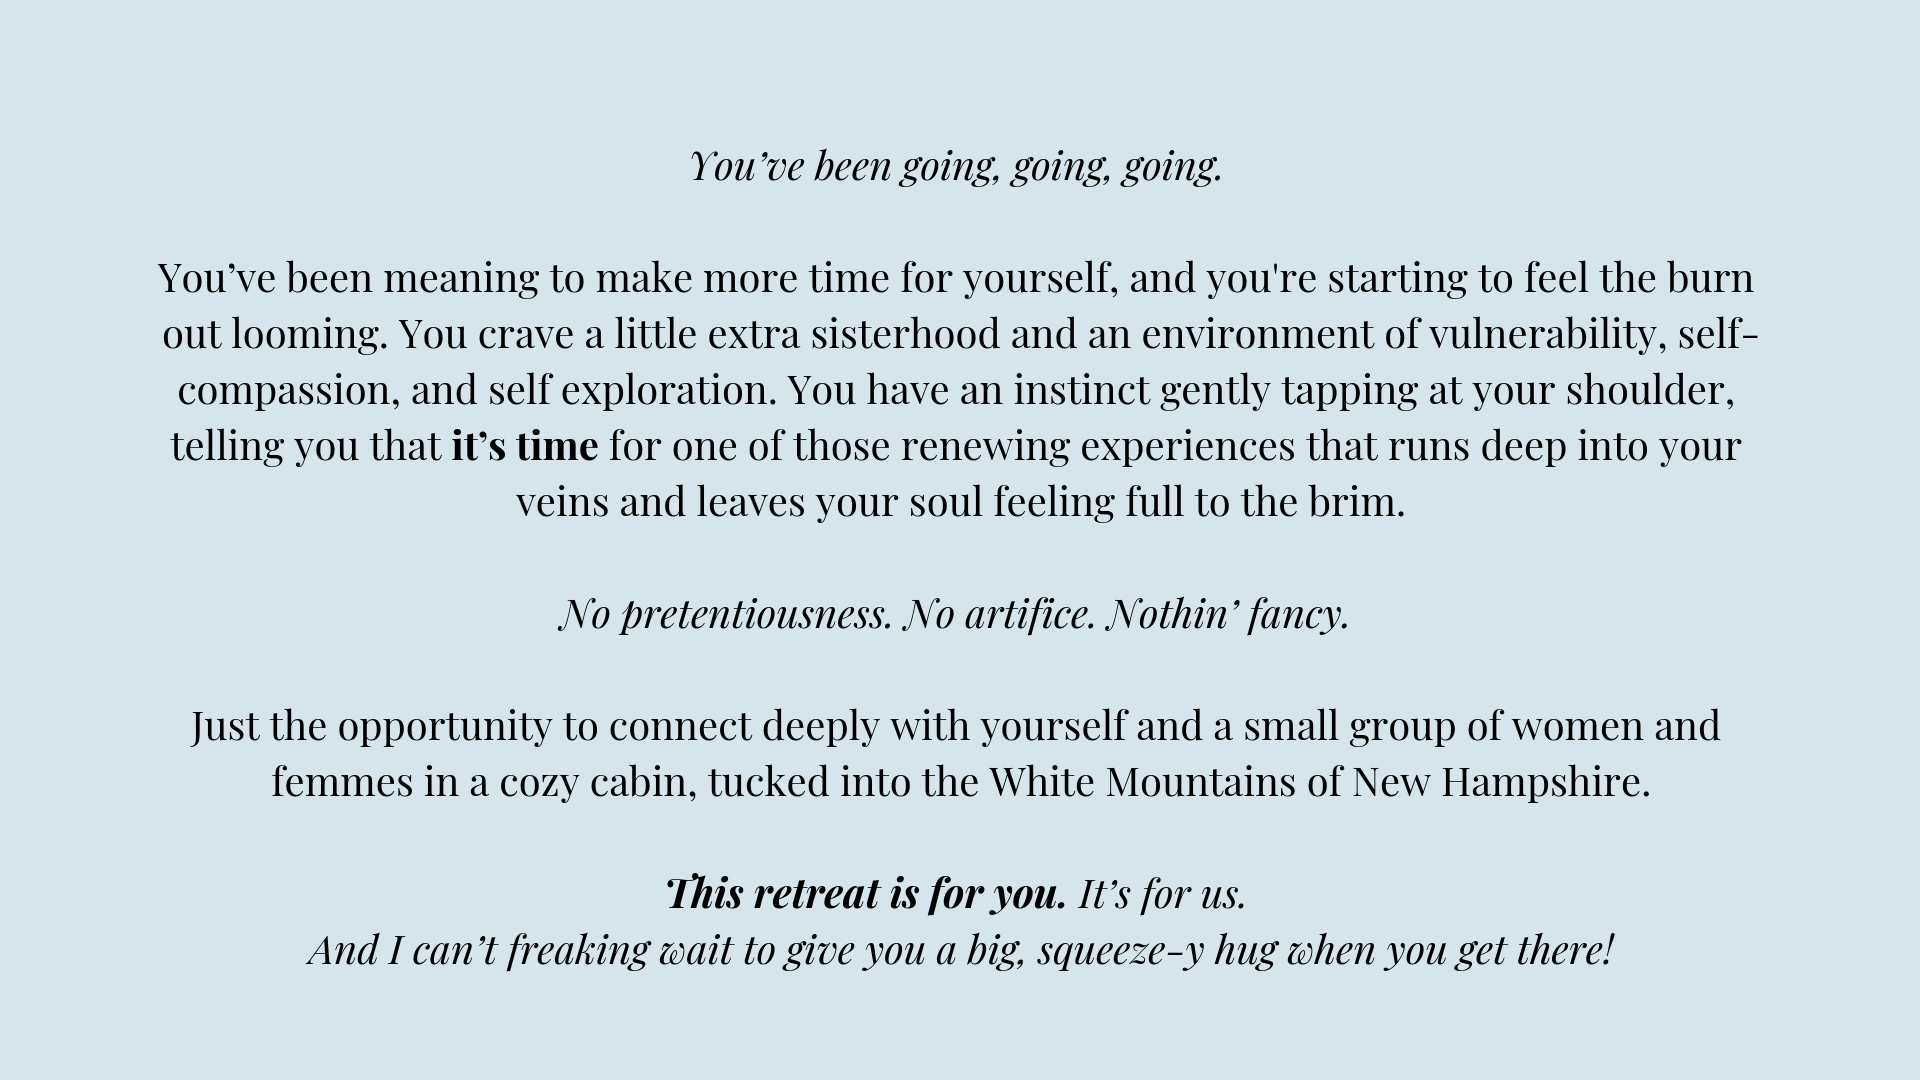 You've been going, going, going. You've been meaning to make more time for yourself and are starting to feel the burn out looming. You crave a little extra sisterhood and an environment of vulnerability, self-compass.jpg